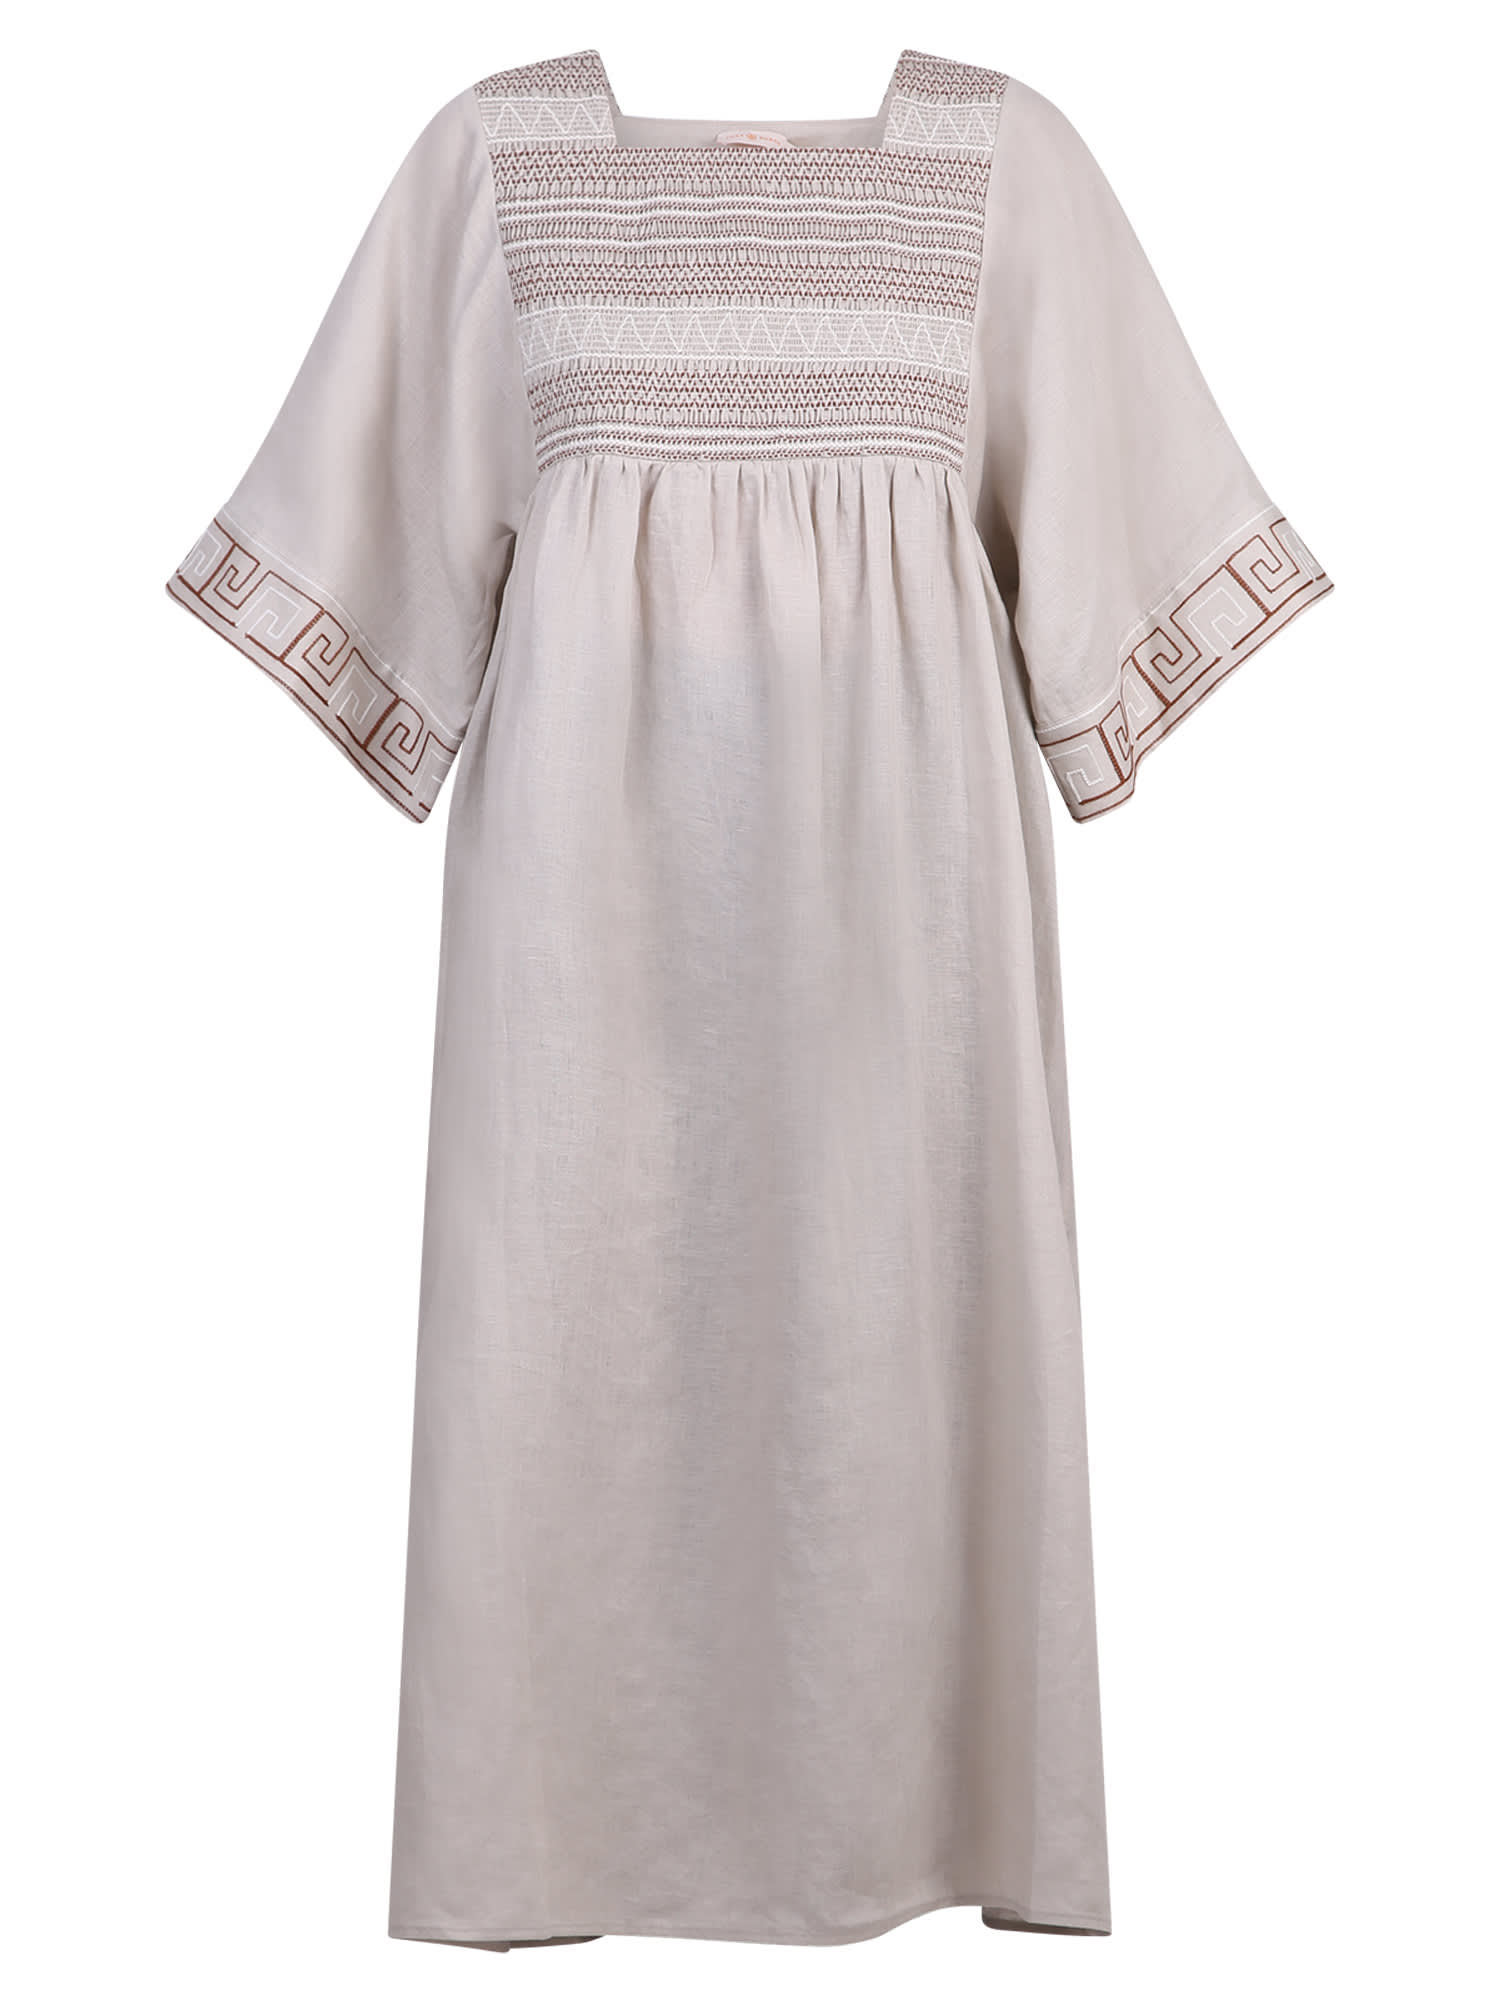 Buy Tory Burch Embroidered Dress online, shop Tory Burch with free shipping